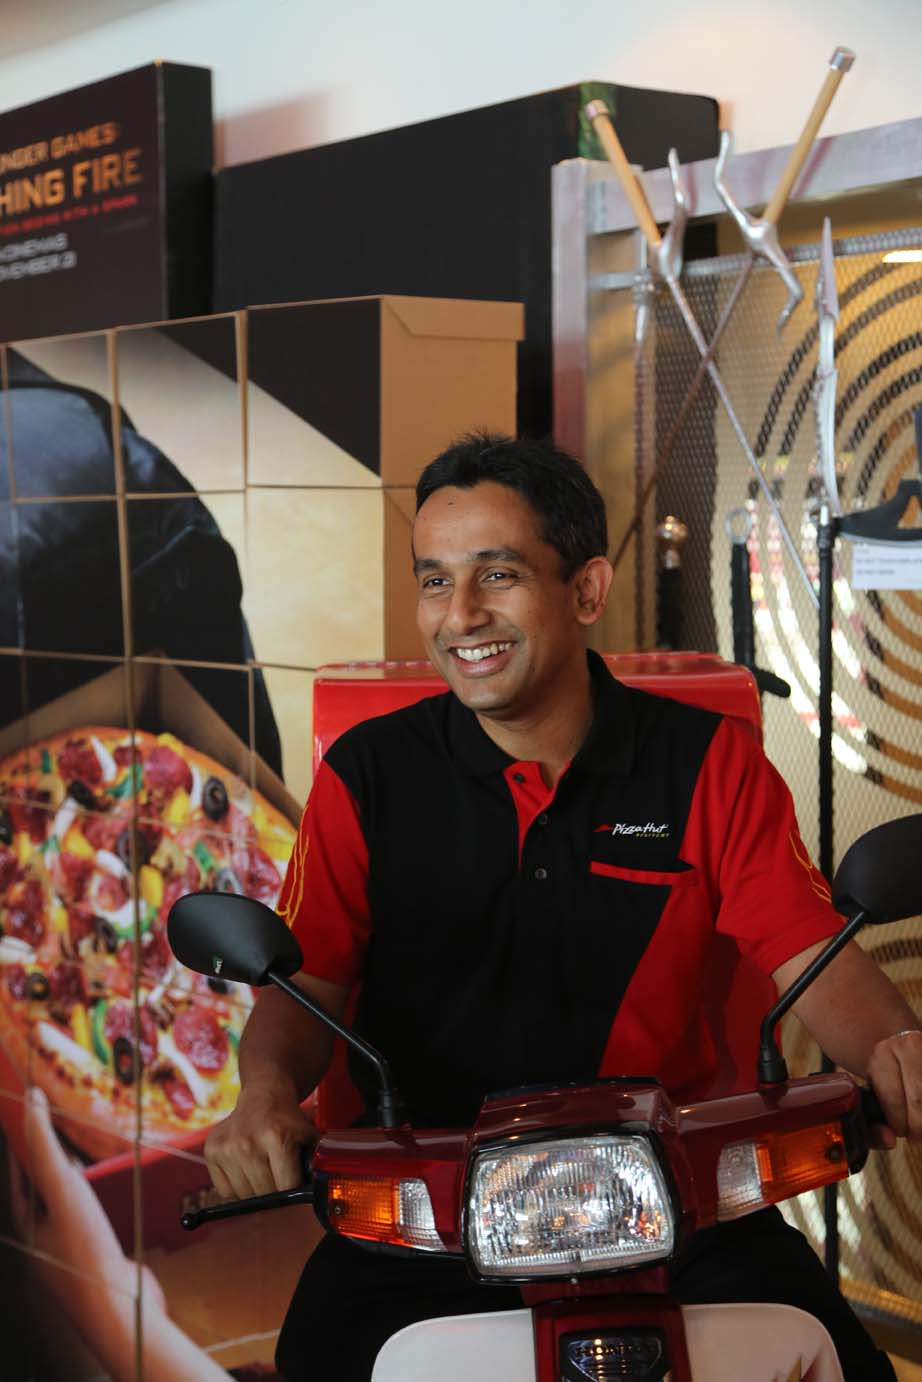 An All New Pizza Hut Delivery – A Delightful Convergence